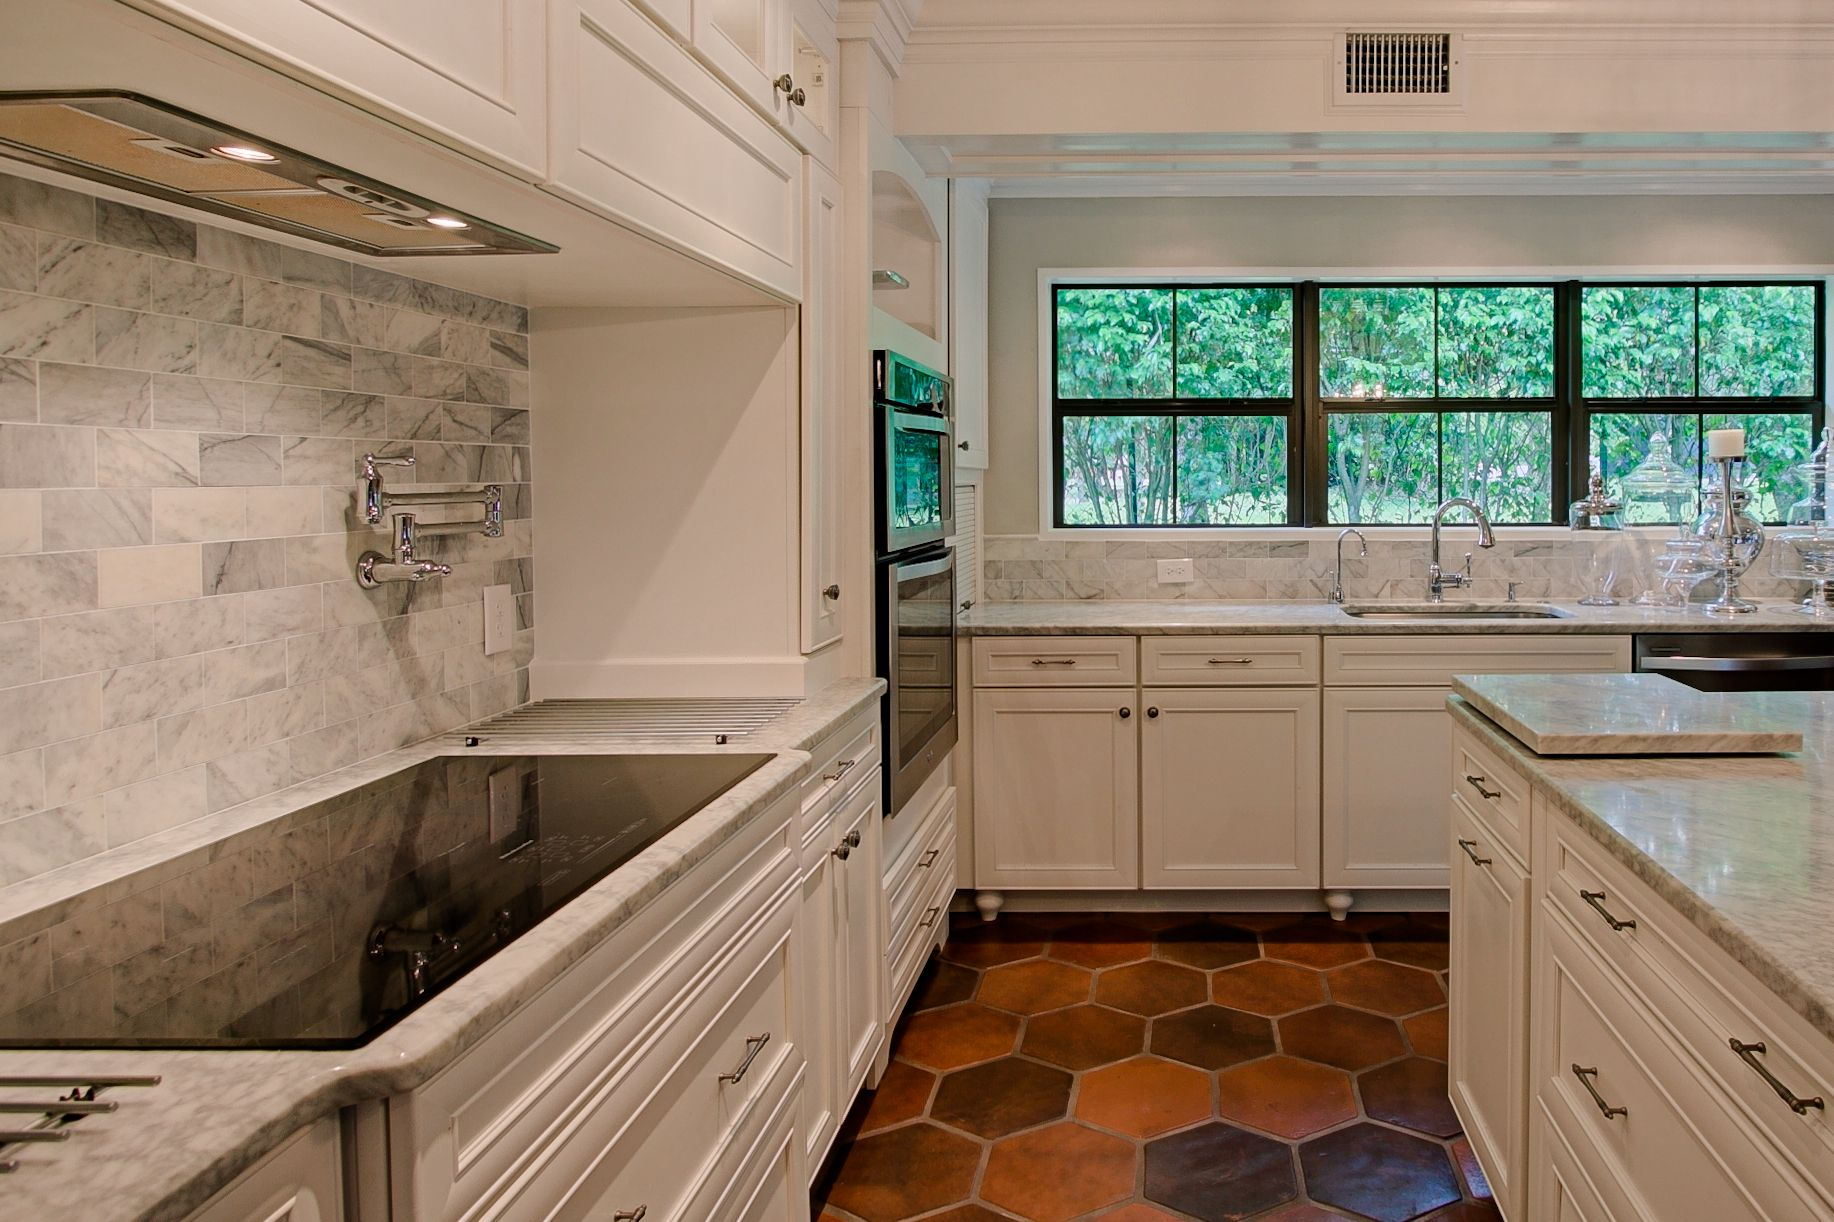 Terracotta Floor Tiles Kitchen Manganese Saltillo Tile Shown In 12x12 Hexagon Terra Cotta Floor